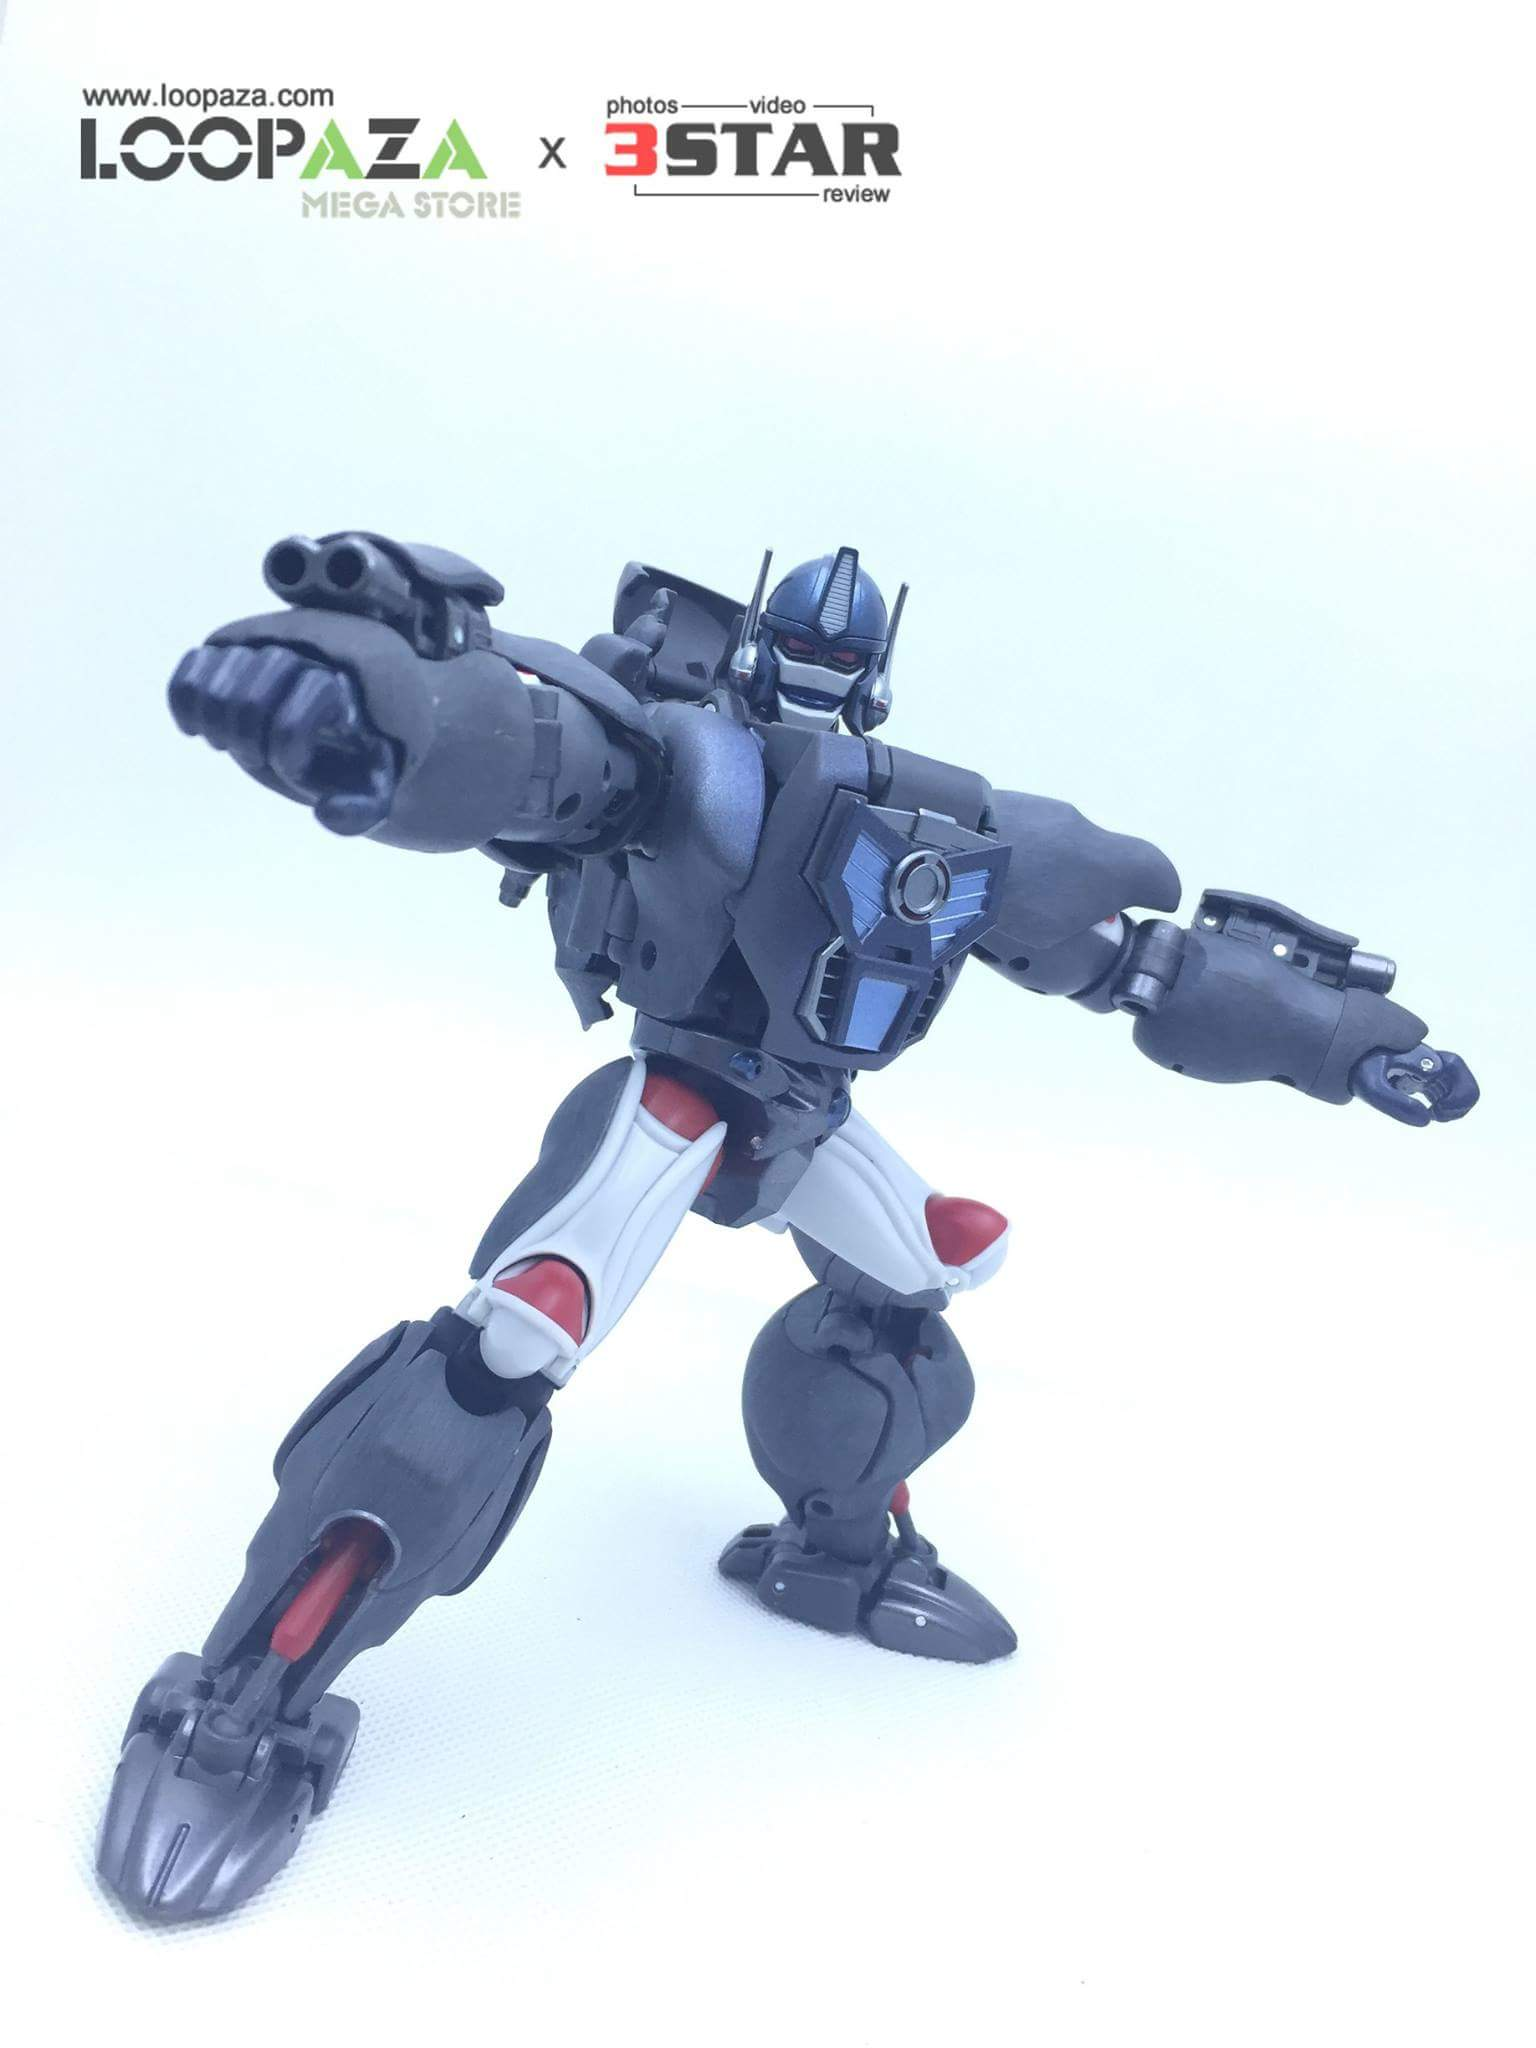 [Masterpiece] MP-32, MP-38 Optimus Primal et MP-38+ Burning Convoy (Beast Wars) - Page 3 XckW9gUU